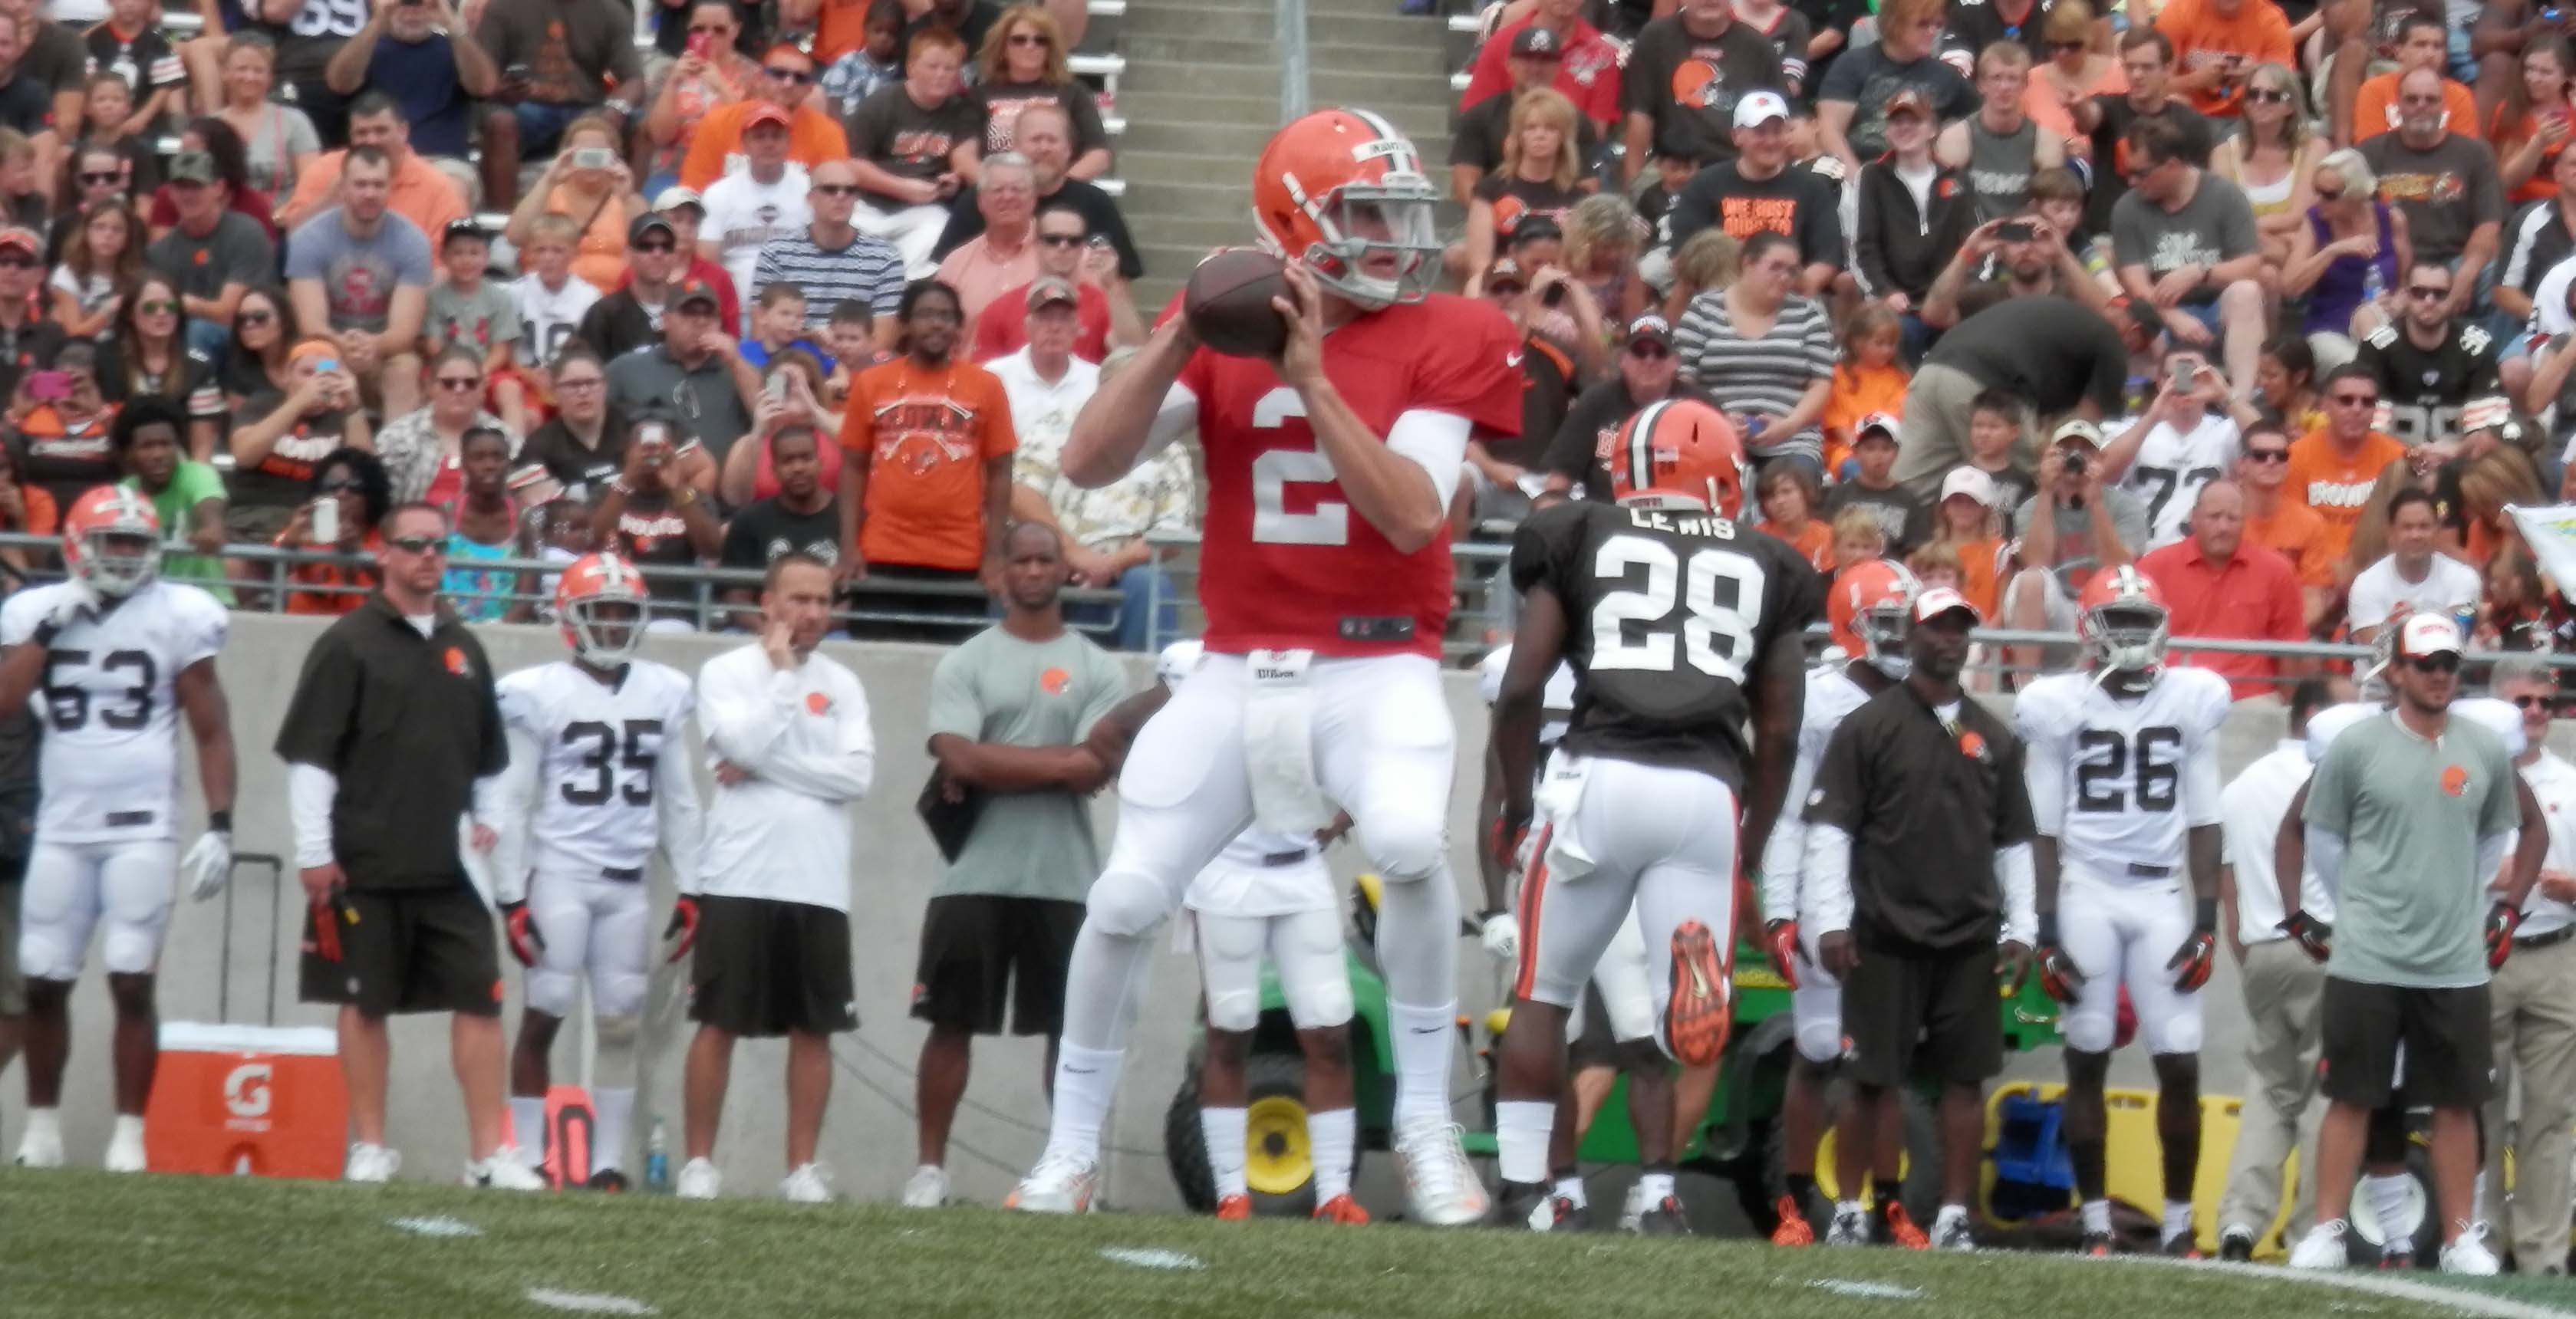 Johnny Manziel stands in the pocket at InfoCision.